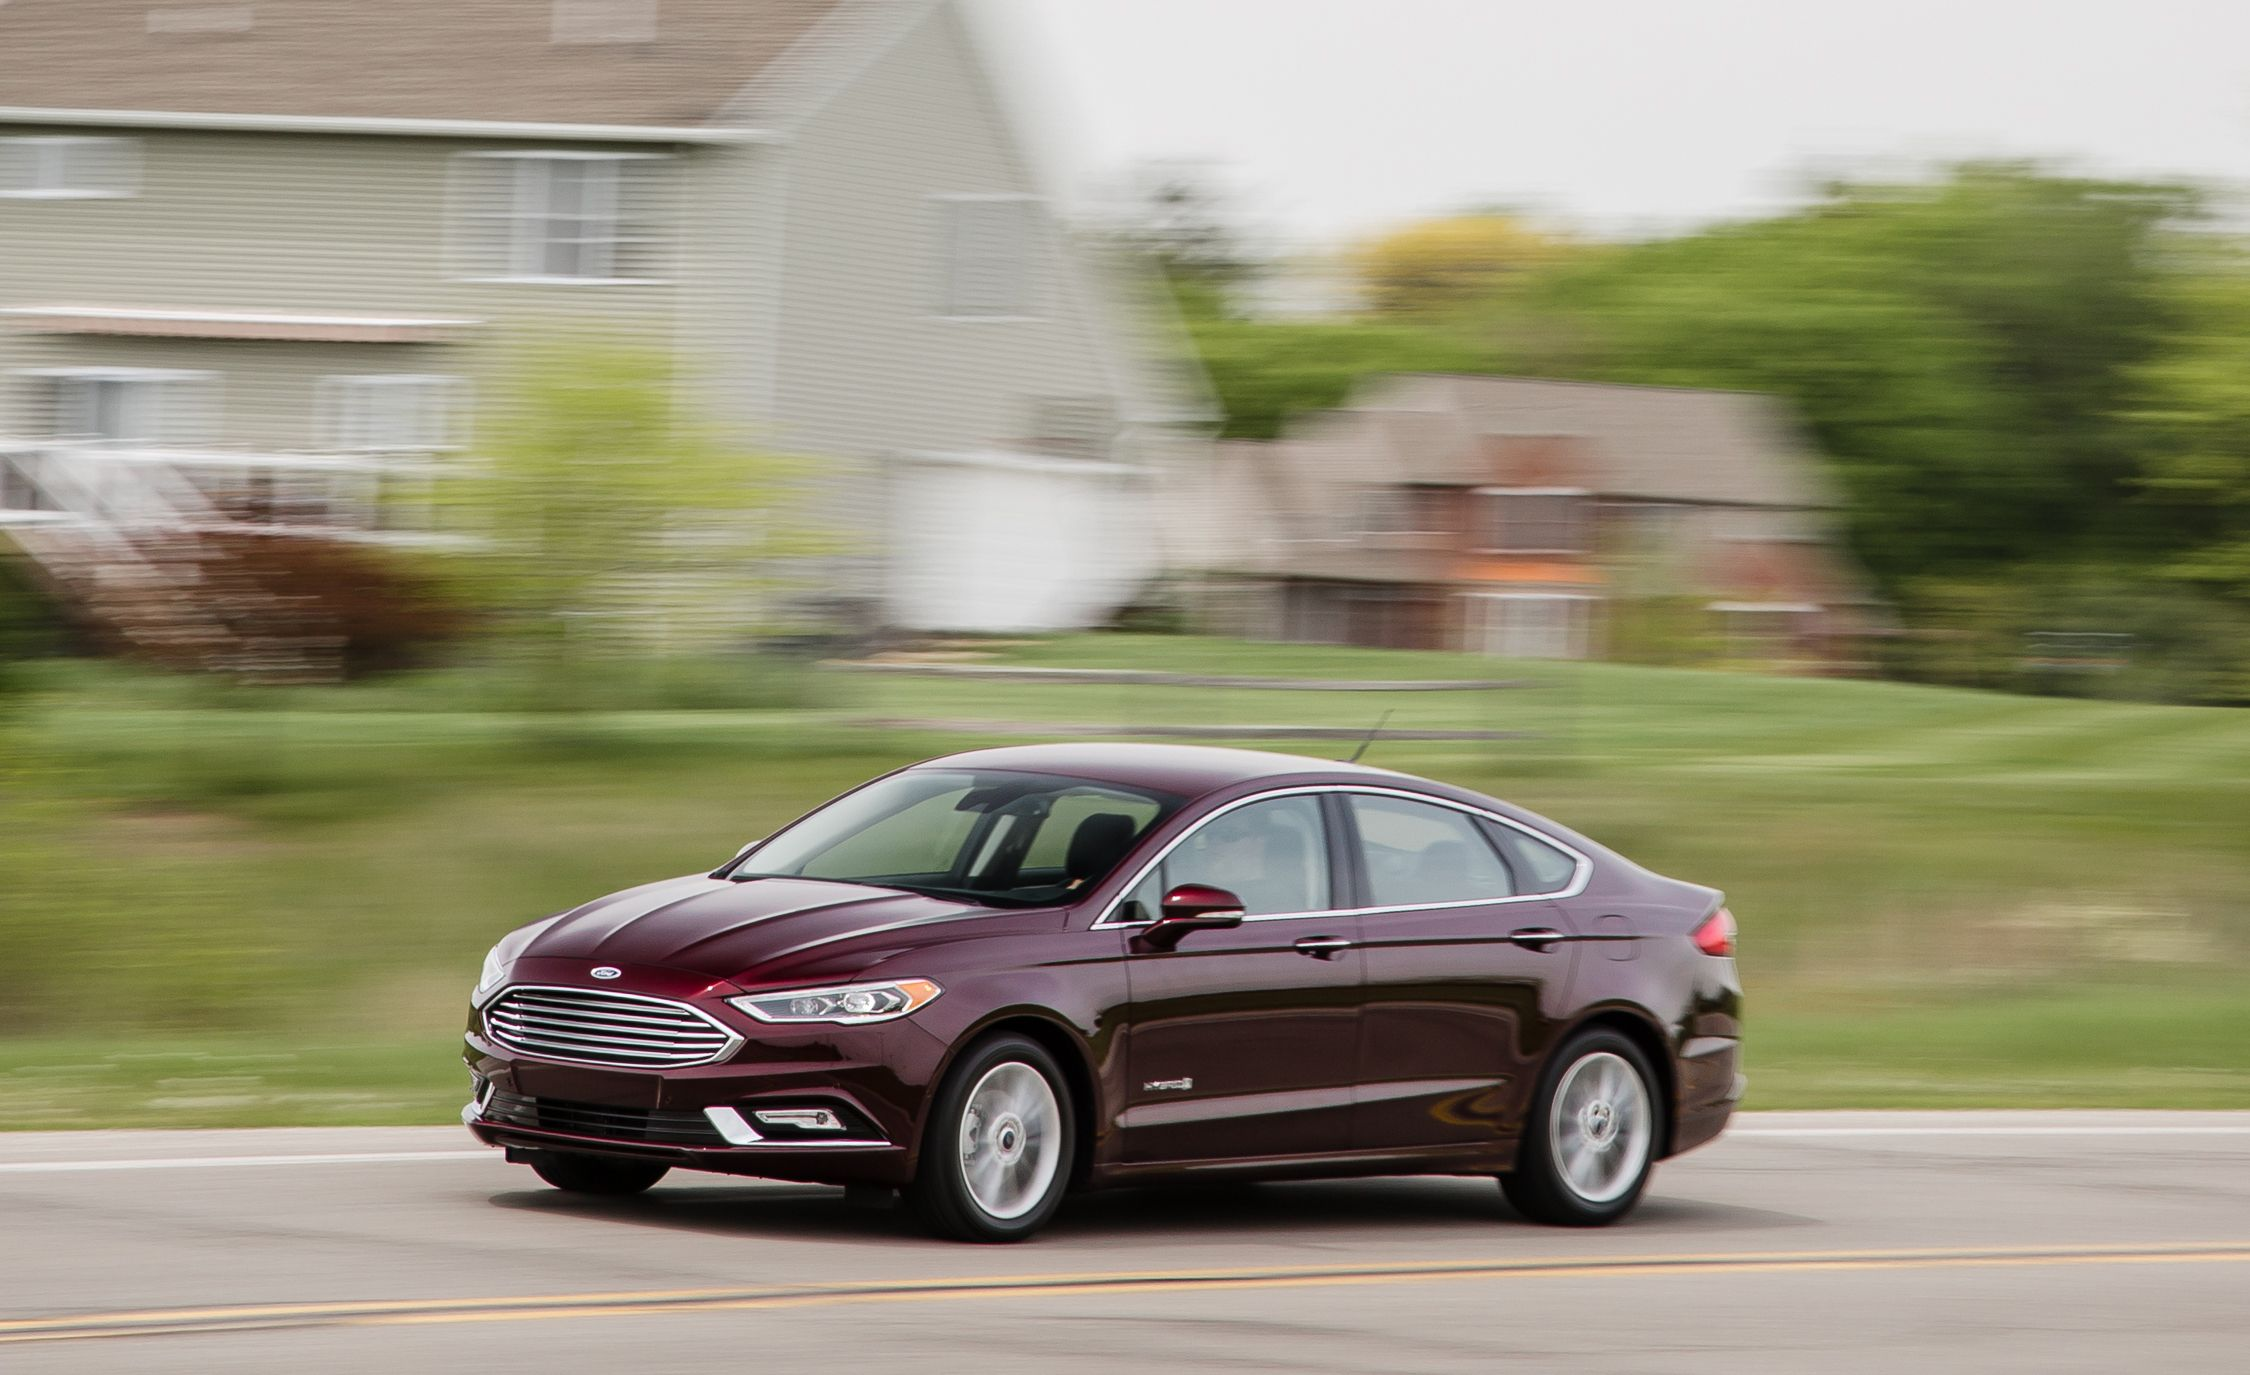 Ford Fusion Reviews | Ford Fusion Price, Photos, and Specs | Car and Driver